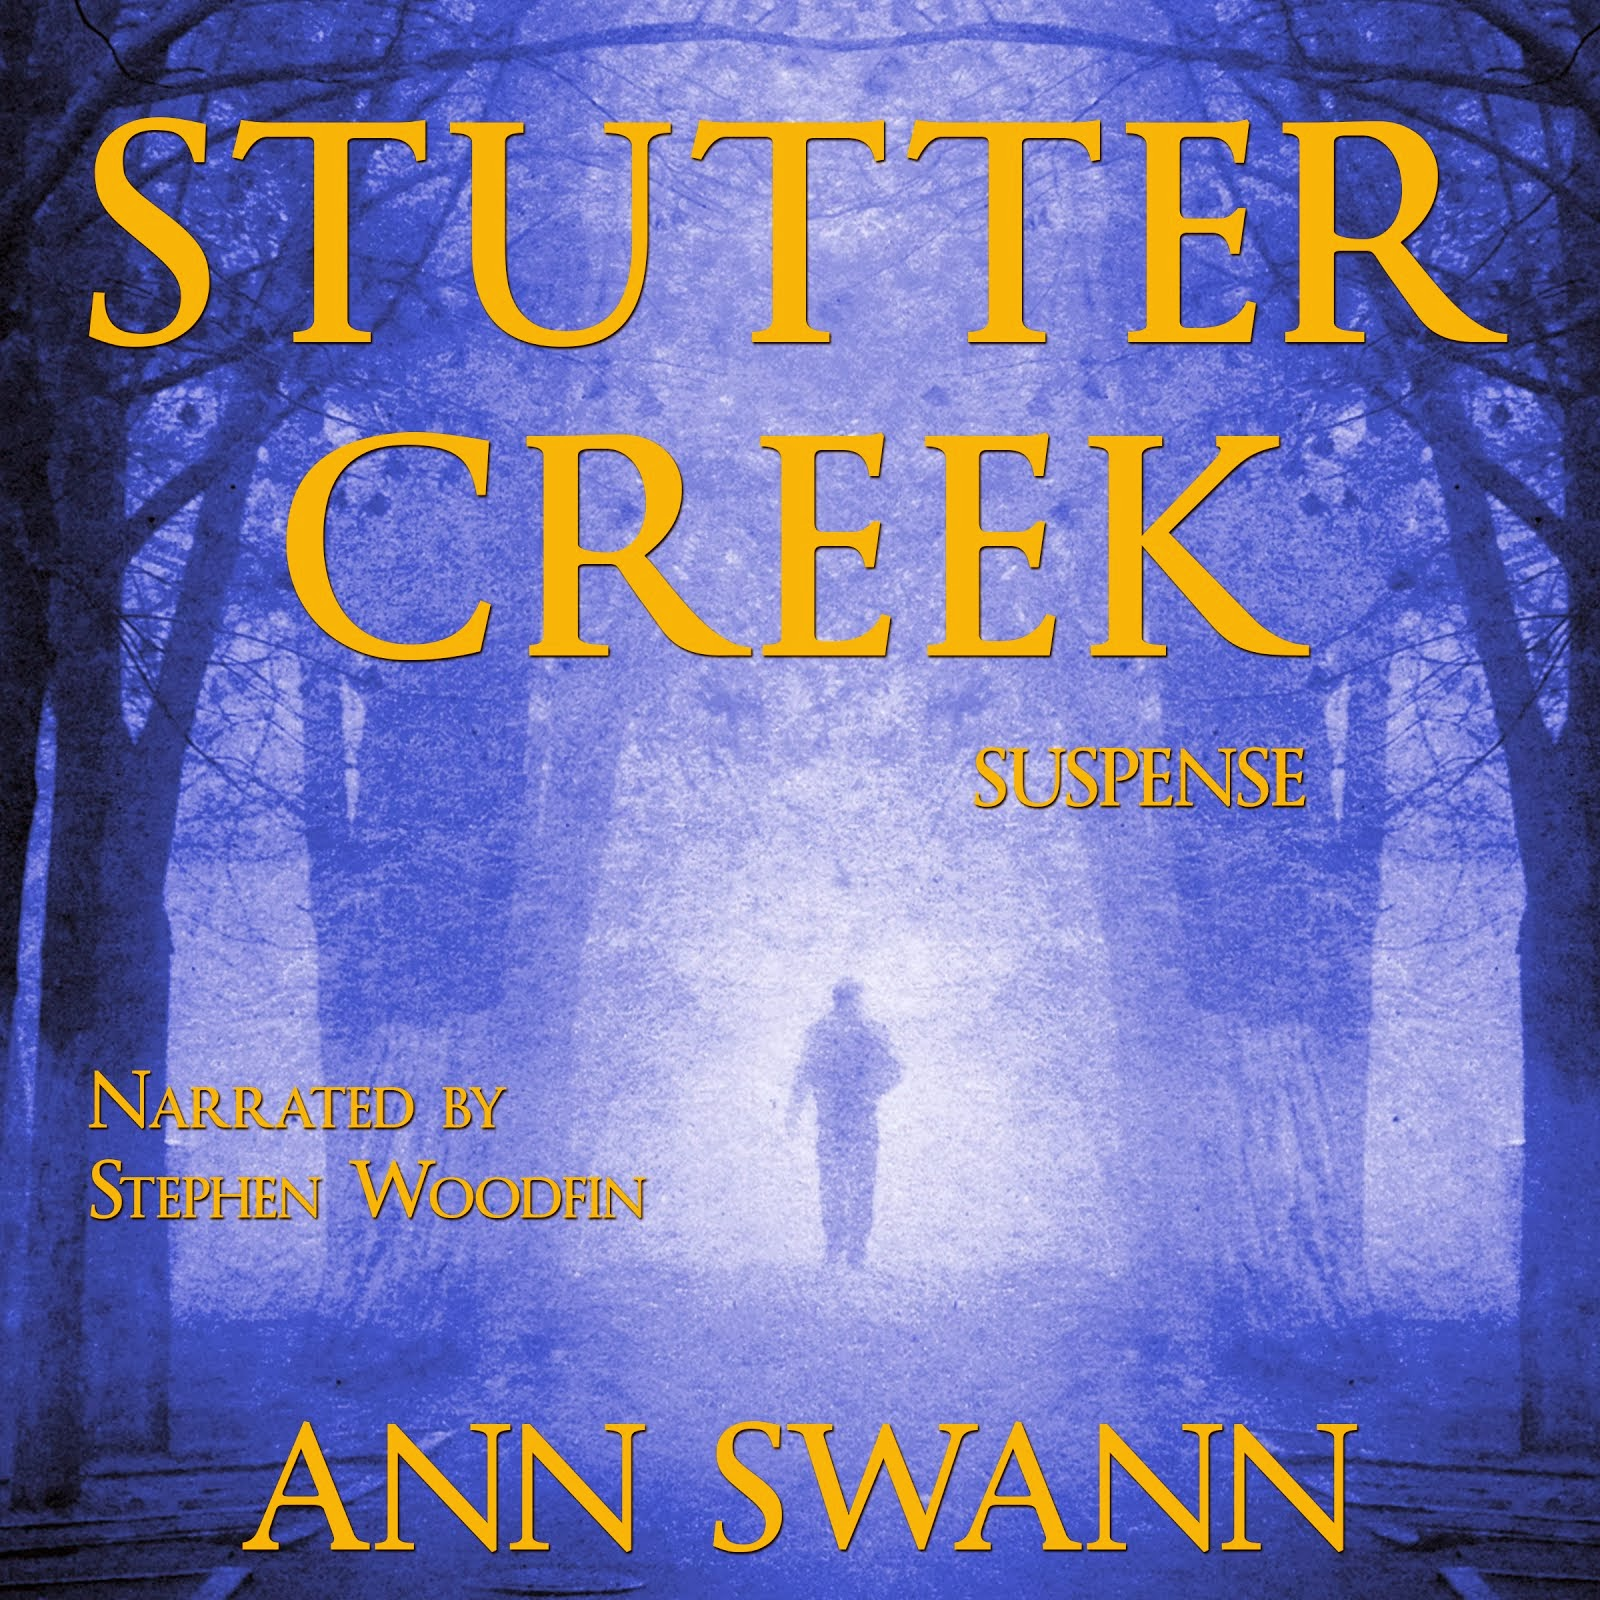 Stutter Creek - audio